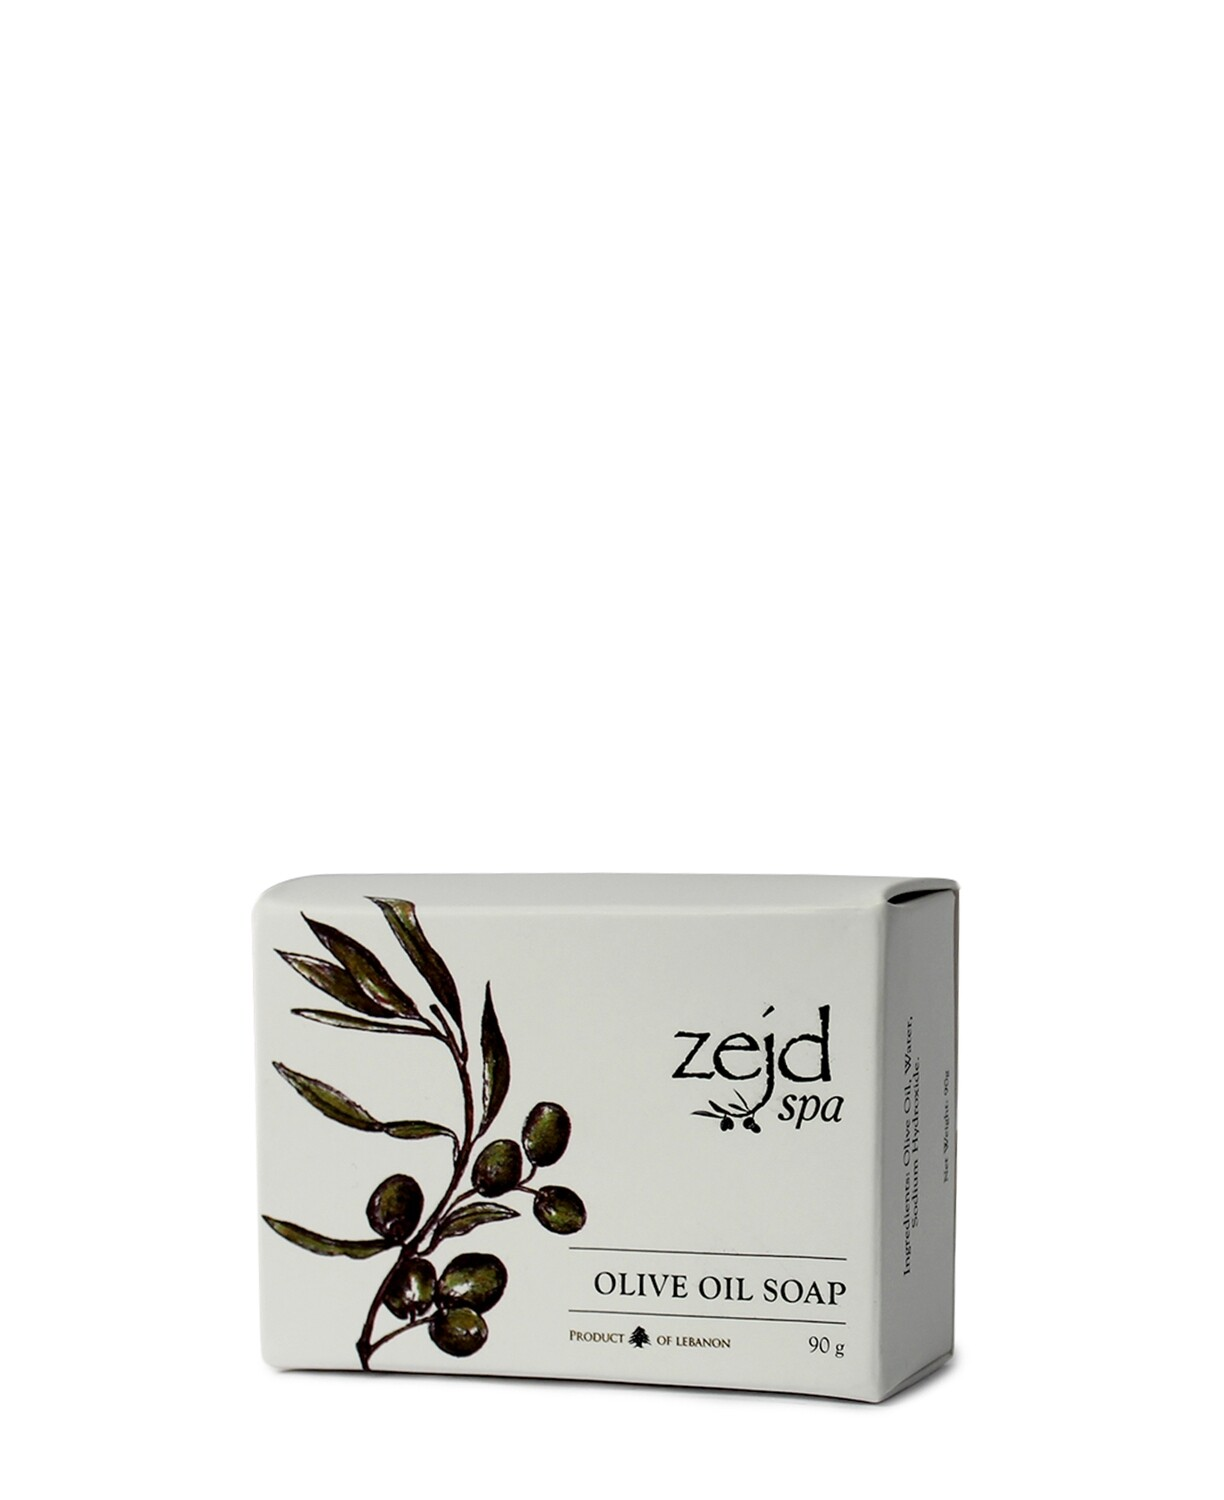 Olive Oil Soap (Bar) - Zejd